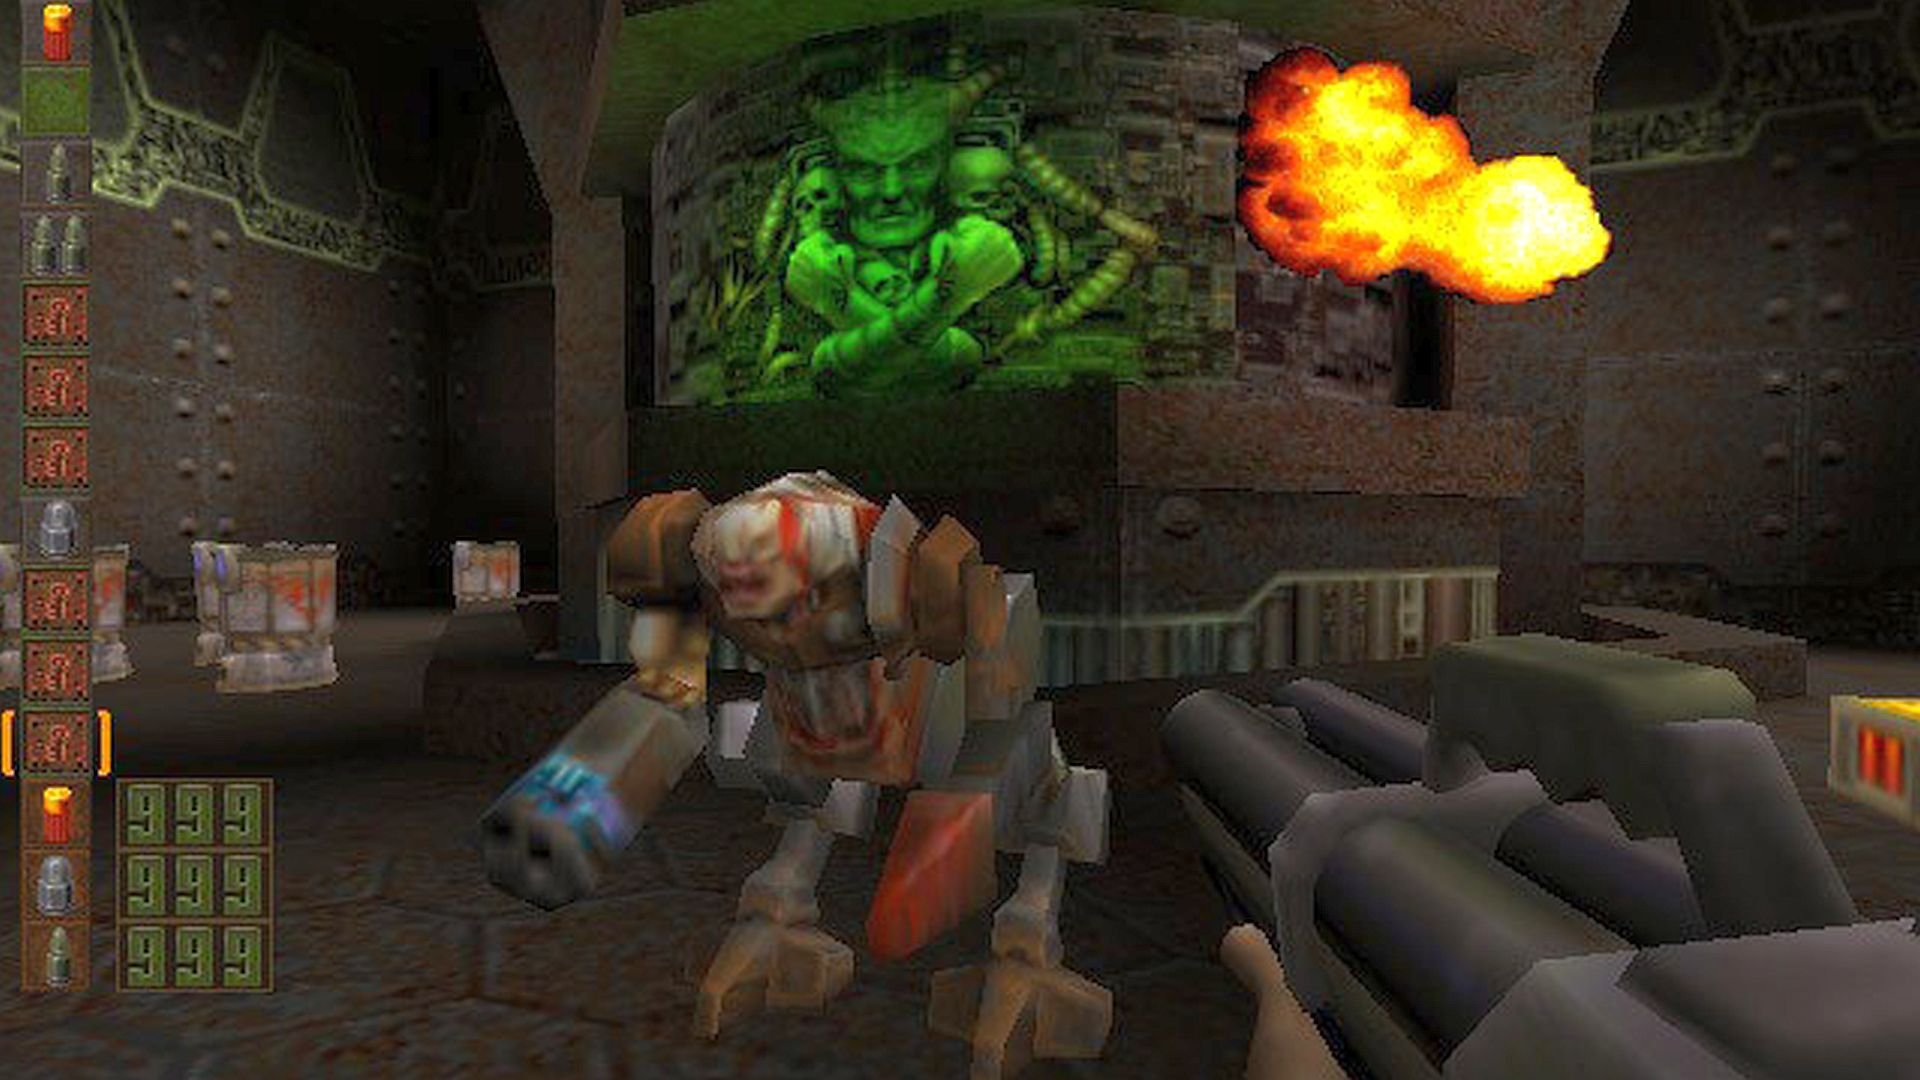 Quake 3 is free to grab for a limited time - Games Predator